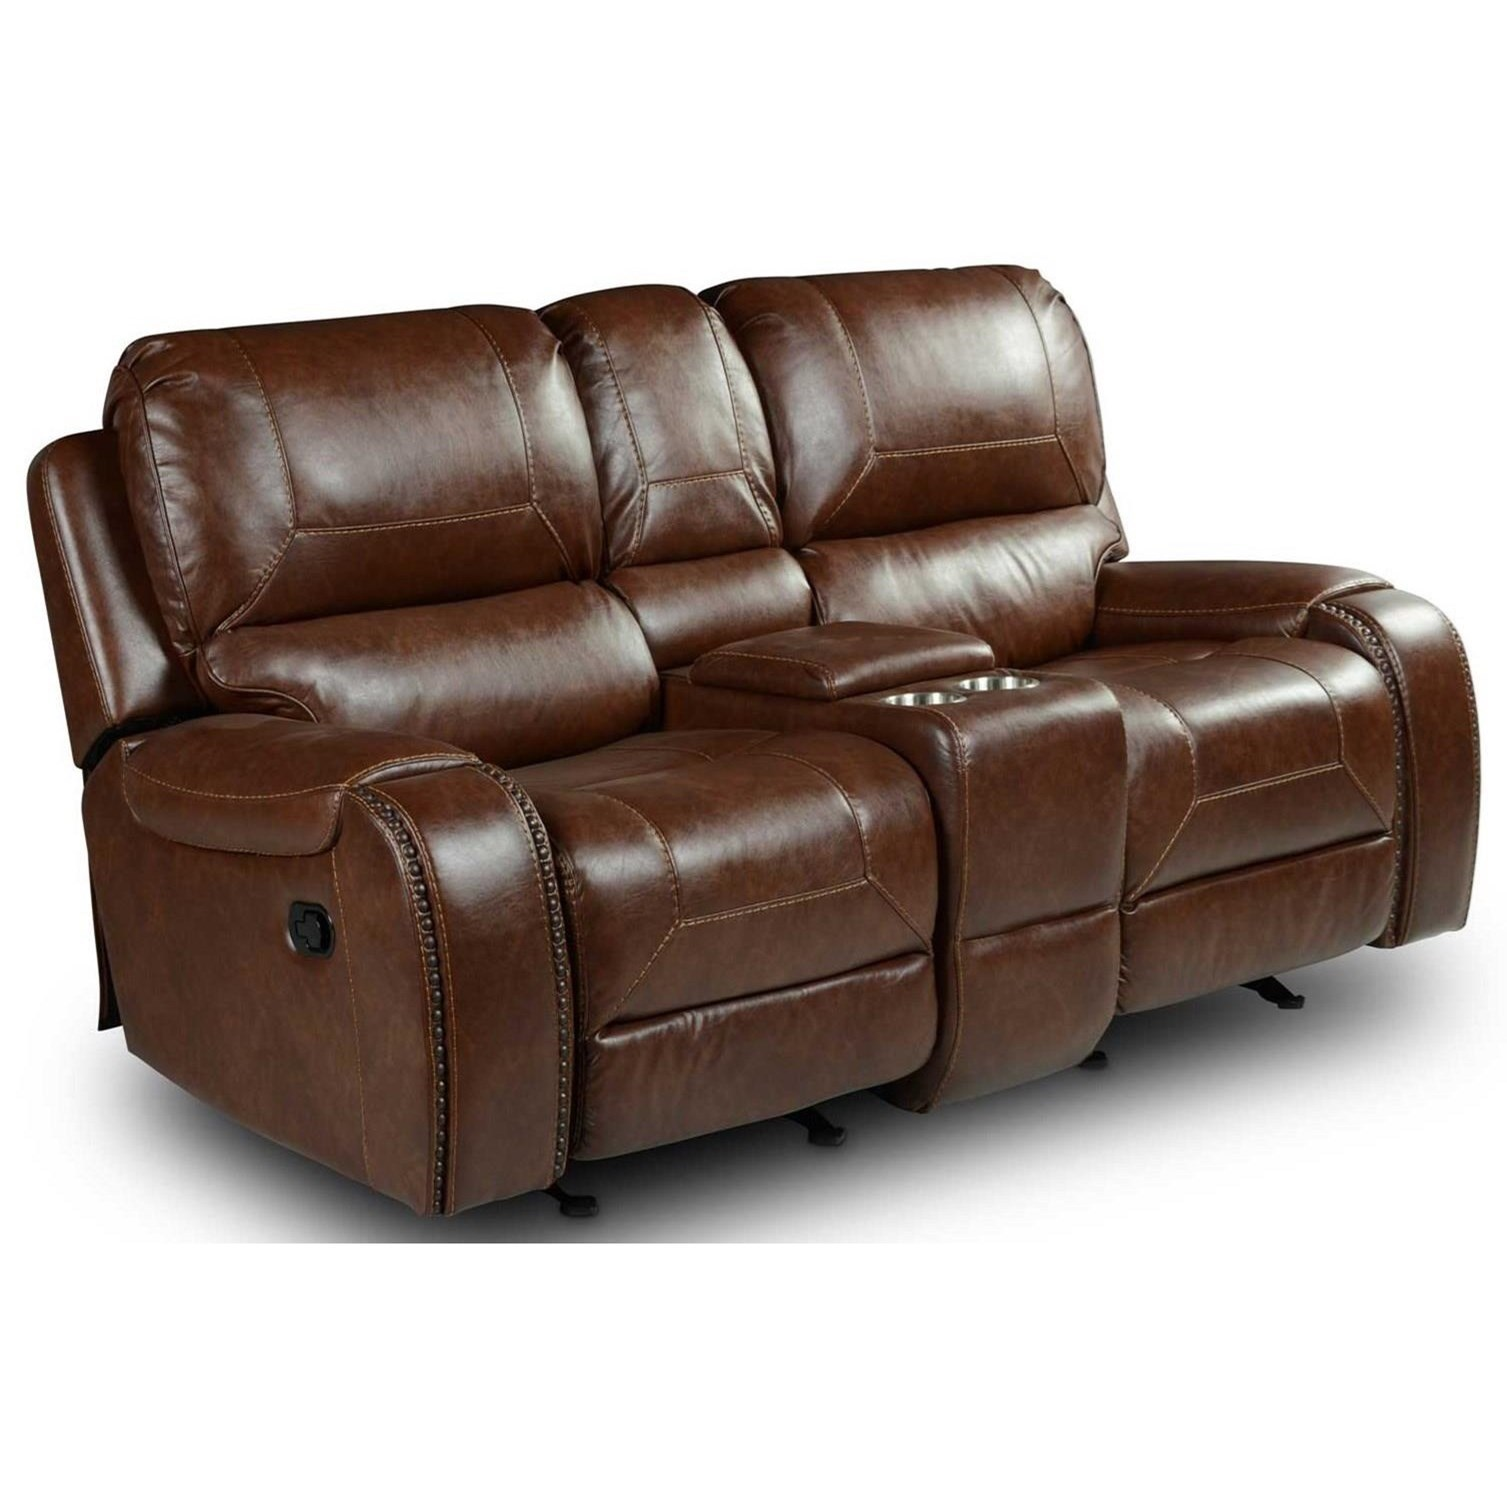 Keily Manual Motion Glider Recliner Loveseat by Steve Silver at Smart Buy Furniture